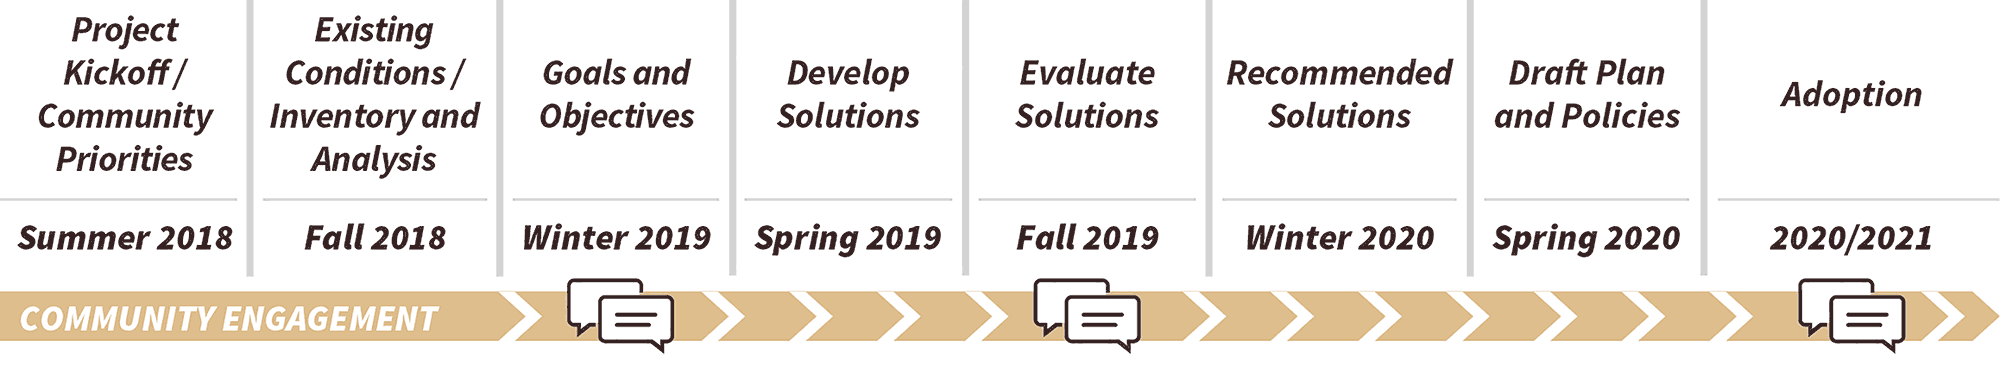 Project Kickoff, Community Priorities: Summer 2018. Existing Conditions, Inventory and Analysis: Fall 2018. Goals and objectives: Fall 2018. Develop solutions: Spring 2019. Evaluate solutions: Fall 2019. Recommended solutions: Winter 2020. Draft Plan and Policies: Spring 2020. Adoption: 2020/2021. Community Engagement: Winter 2019, Fall 2019, 2020/2021.